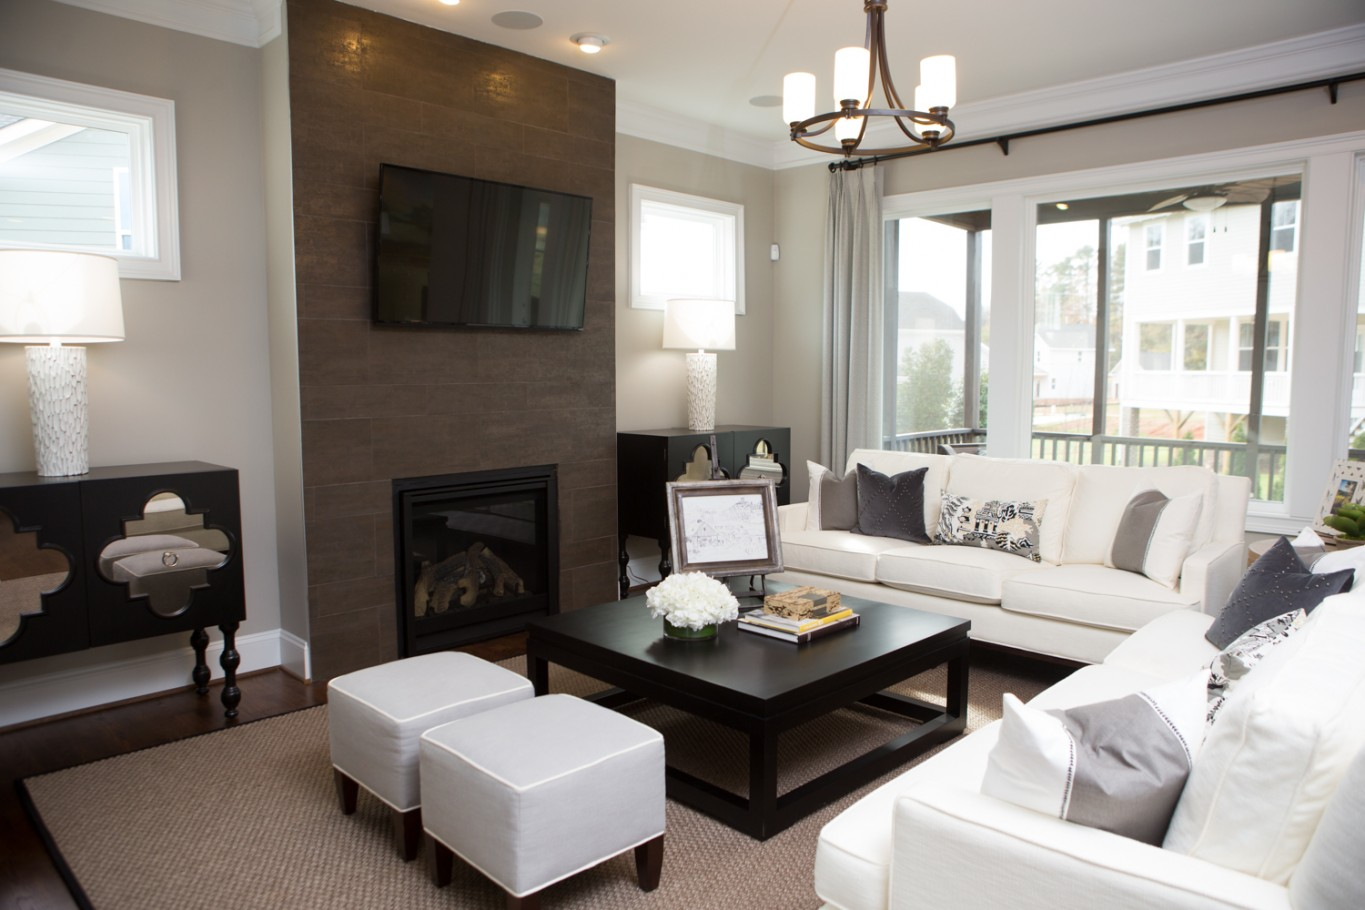 Model Homes Images Interior Model Home Interiors Pictures To Pin On Pinterest Pinsdaddy